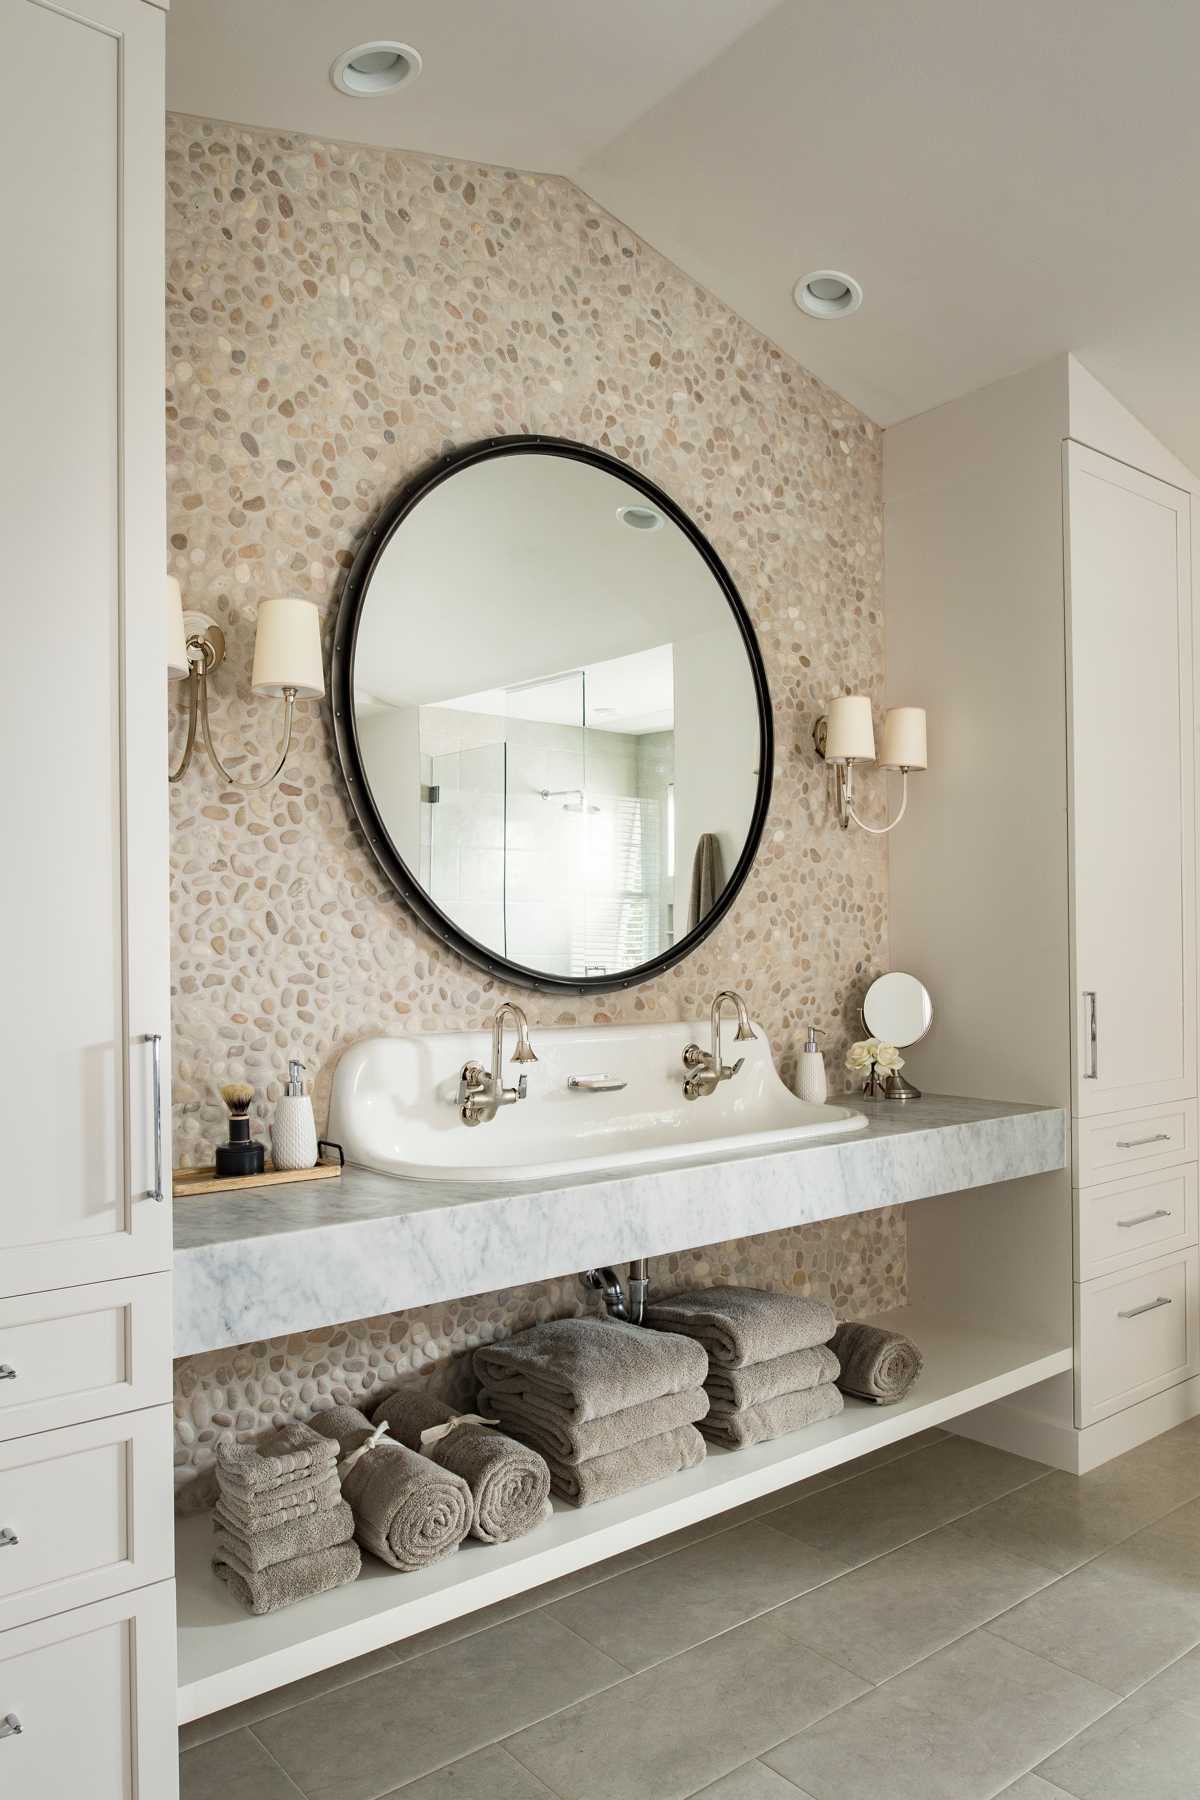 Urban Farmhouse bathroom by Brianna Michelle Design